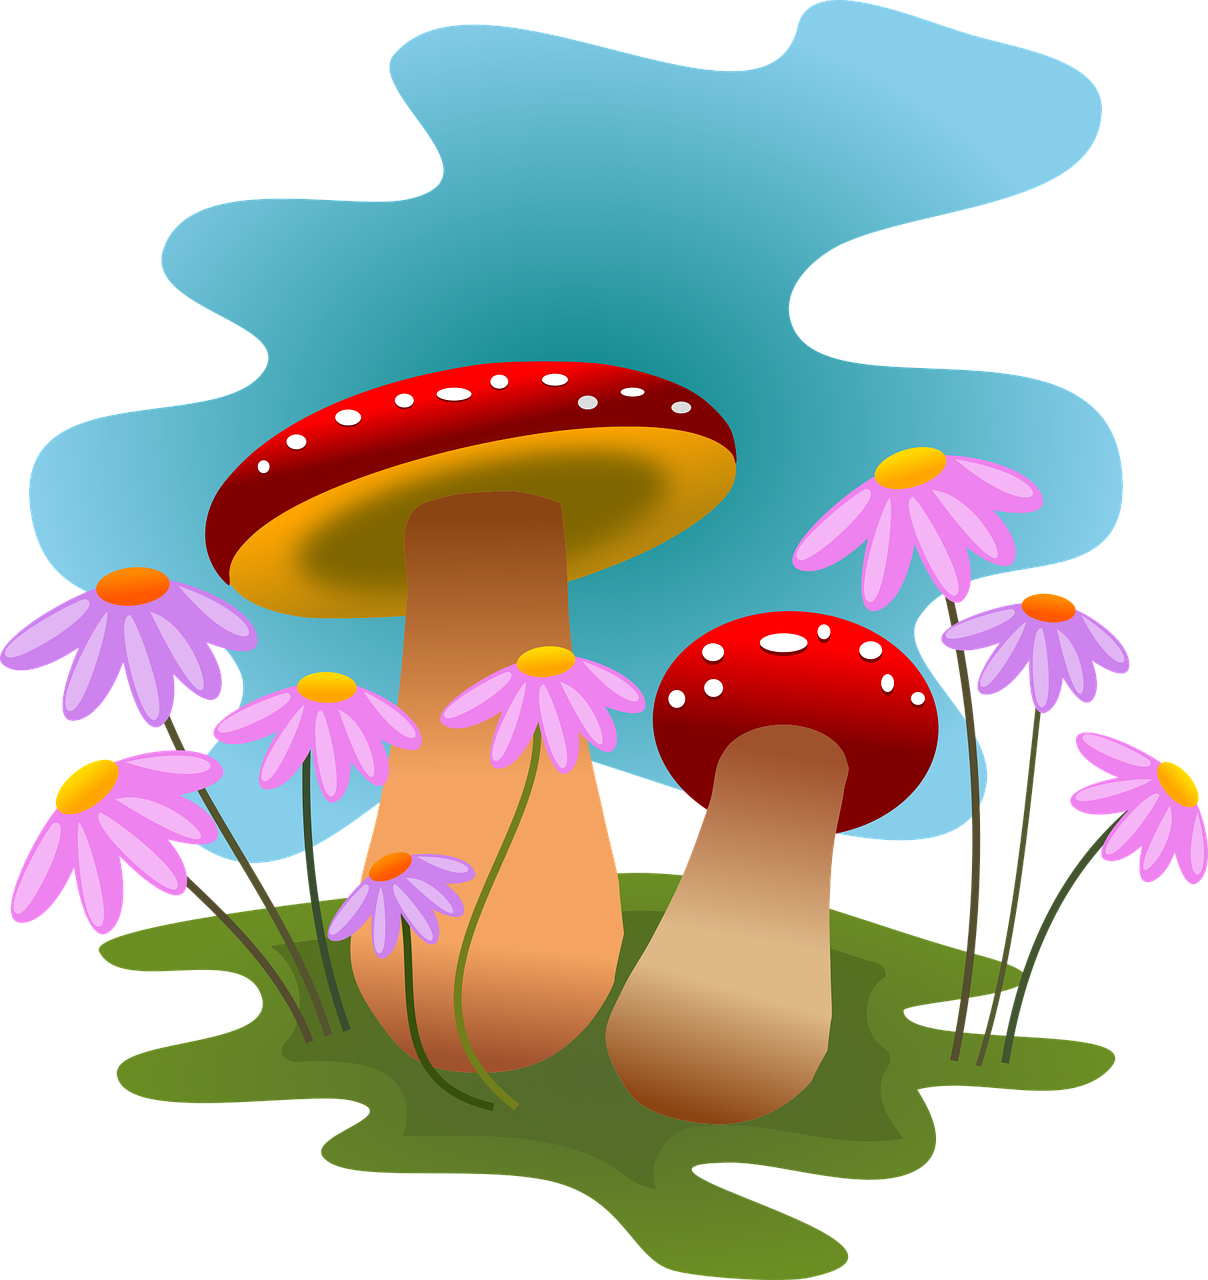 Autumn fungi forest flowers. Mushrooms vector art picture transparent library